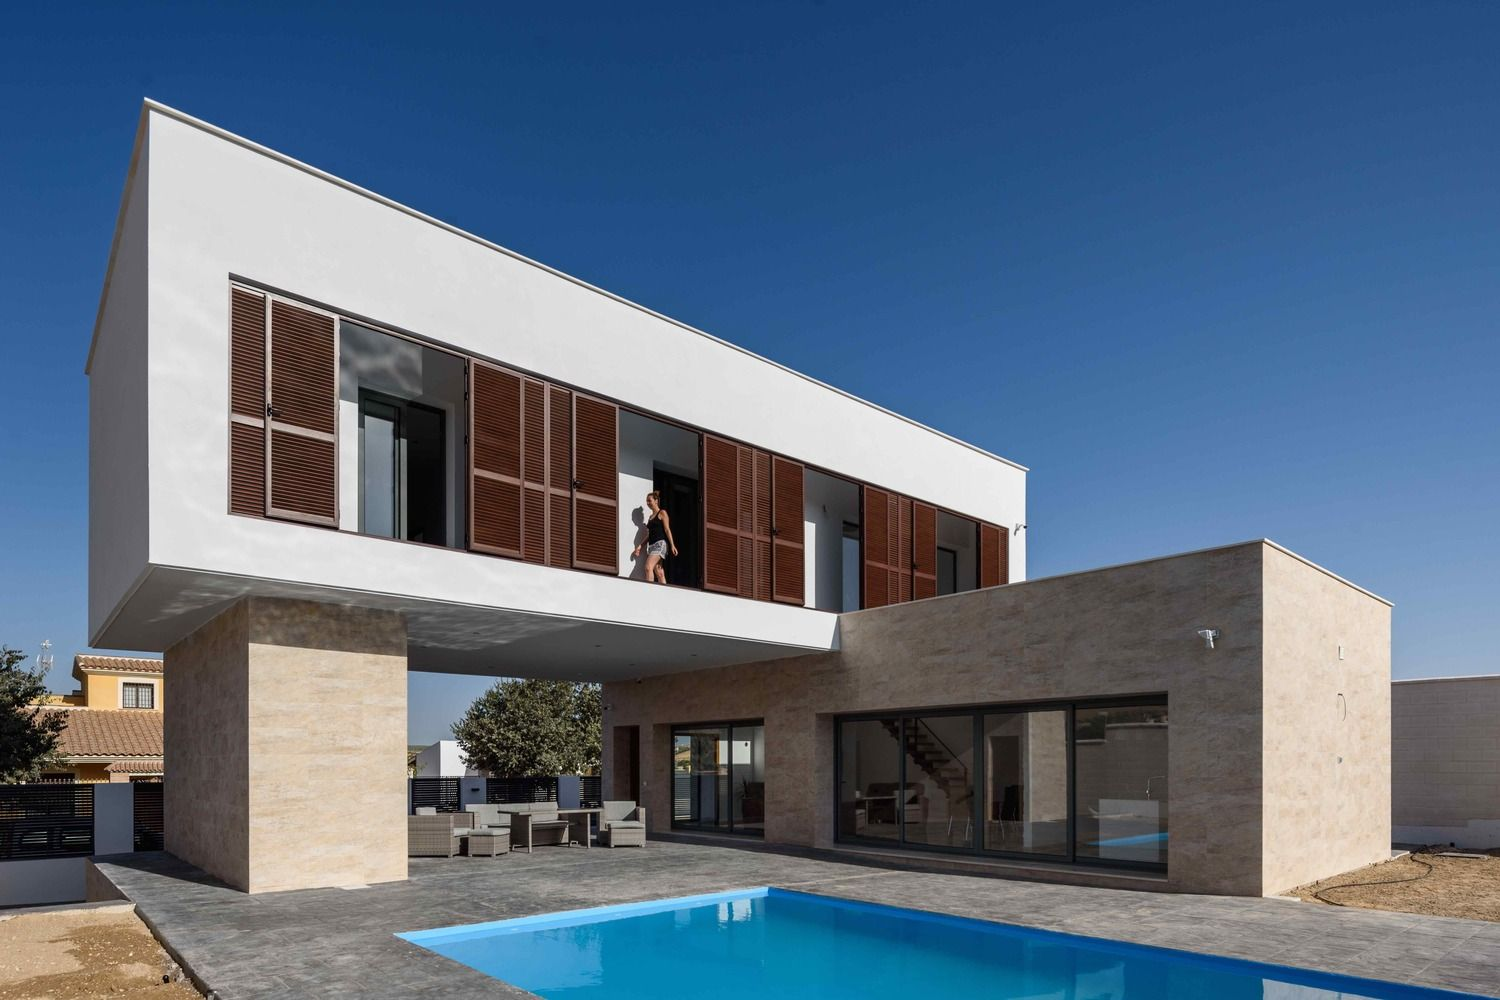 Gallery of L House / g2t Arquitectos 15 Casas